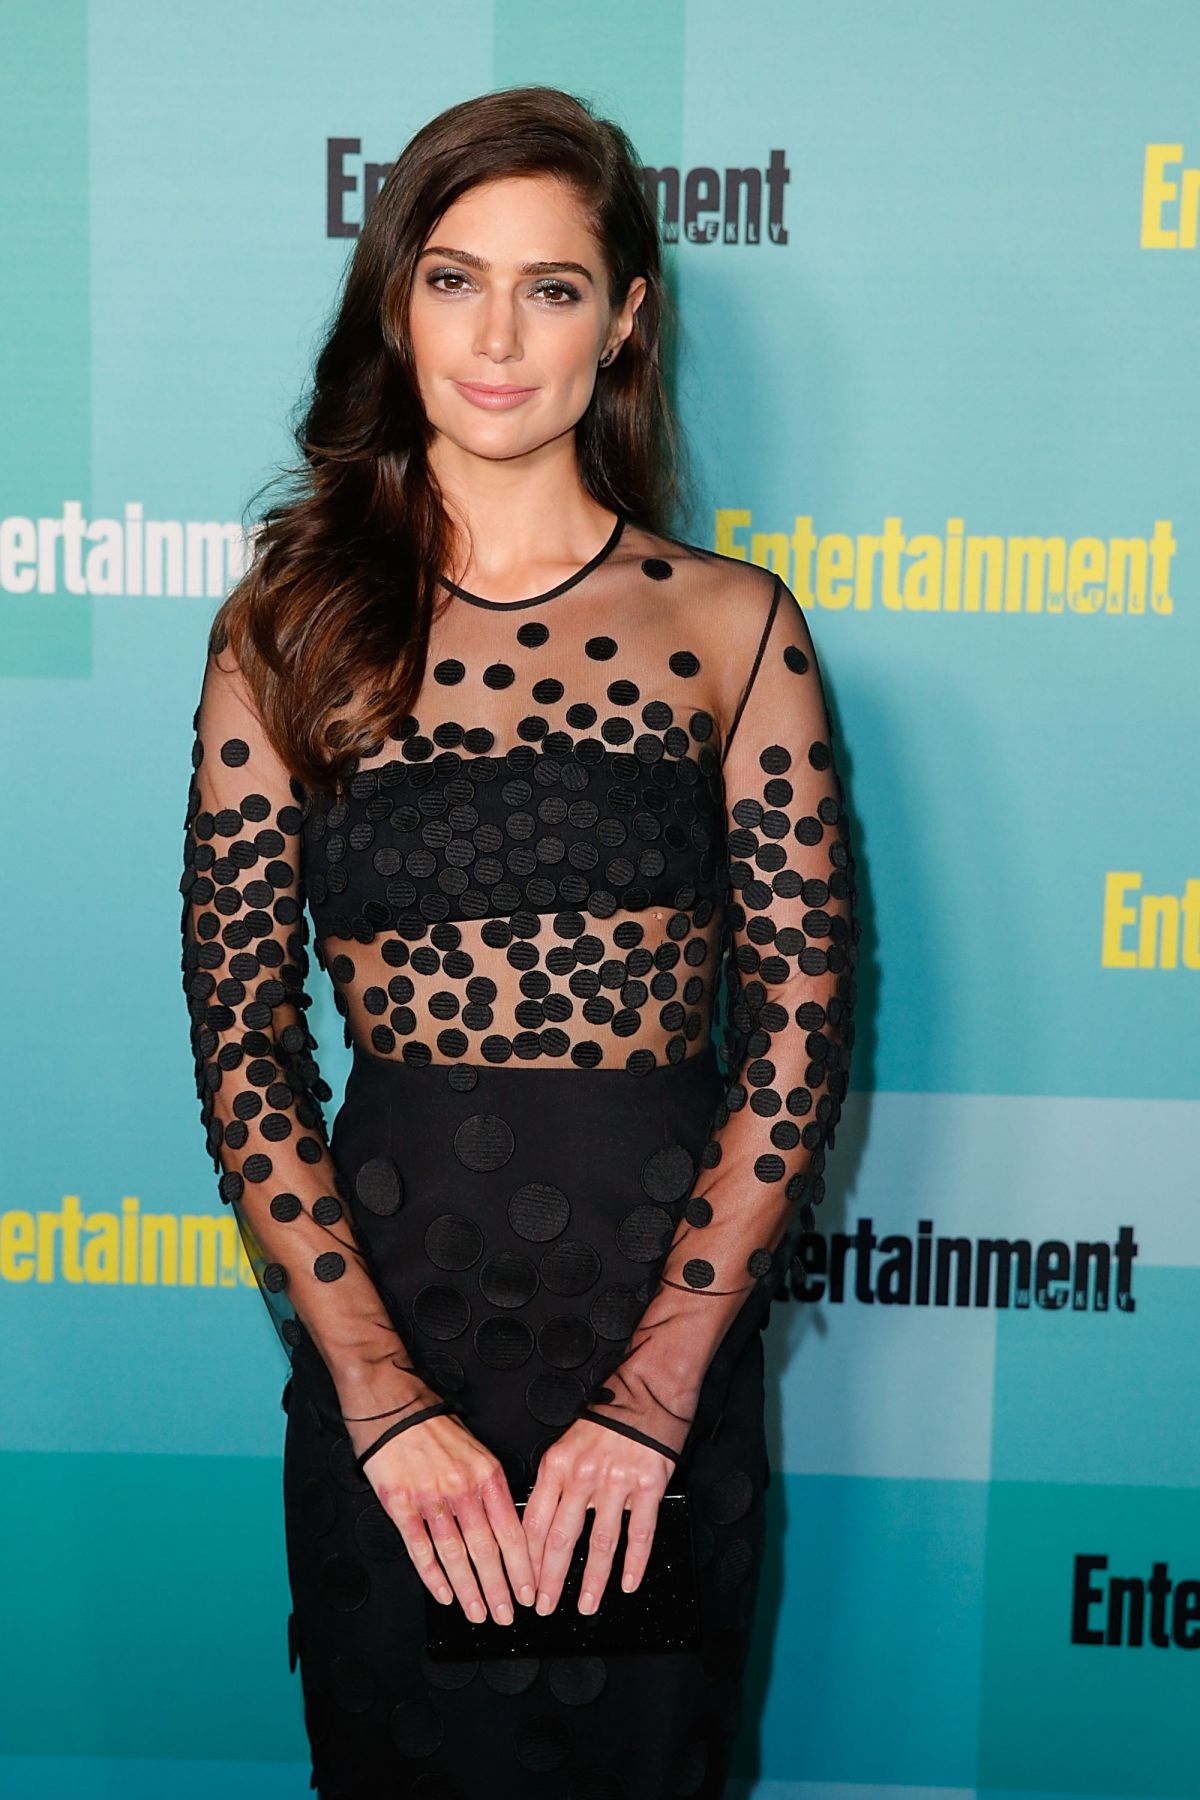 JANET MONTGOMERY at Entertainment Weekly Party at Comic-con in San Diego